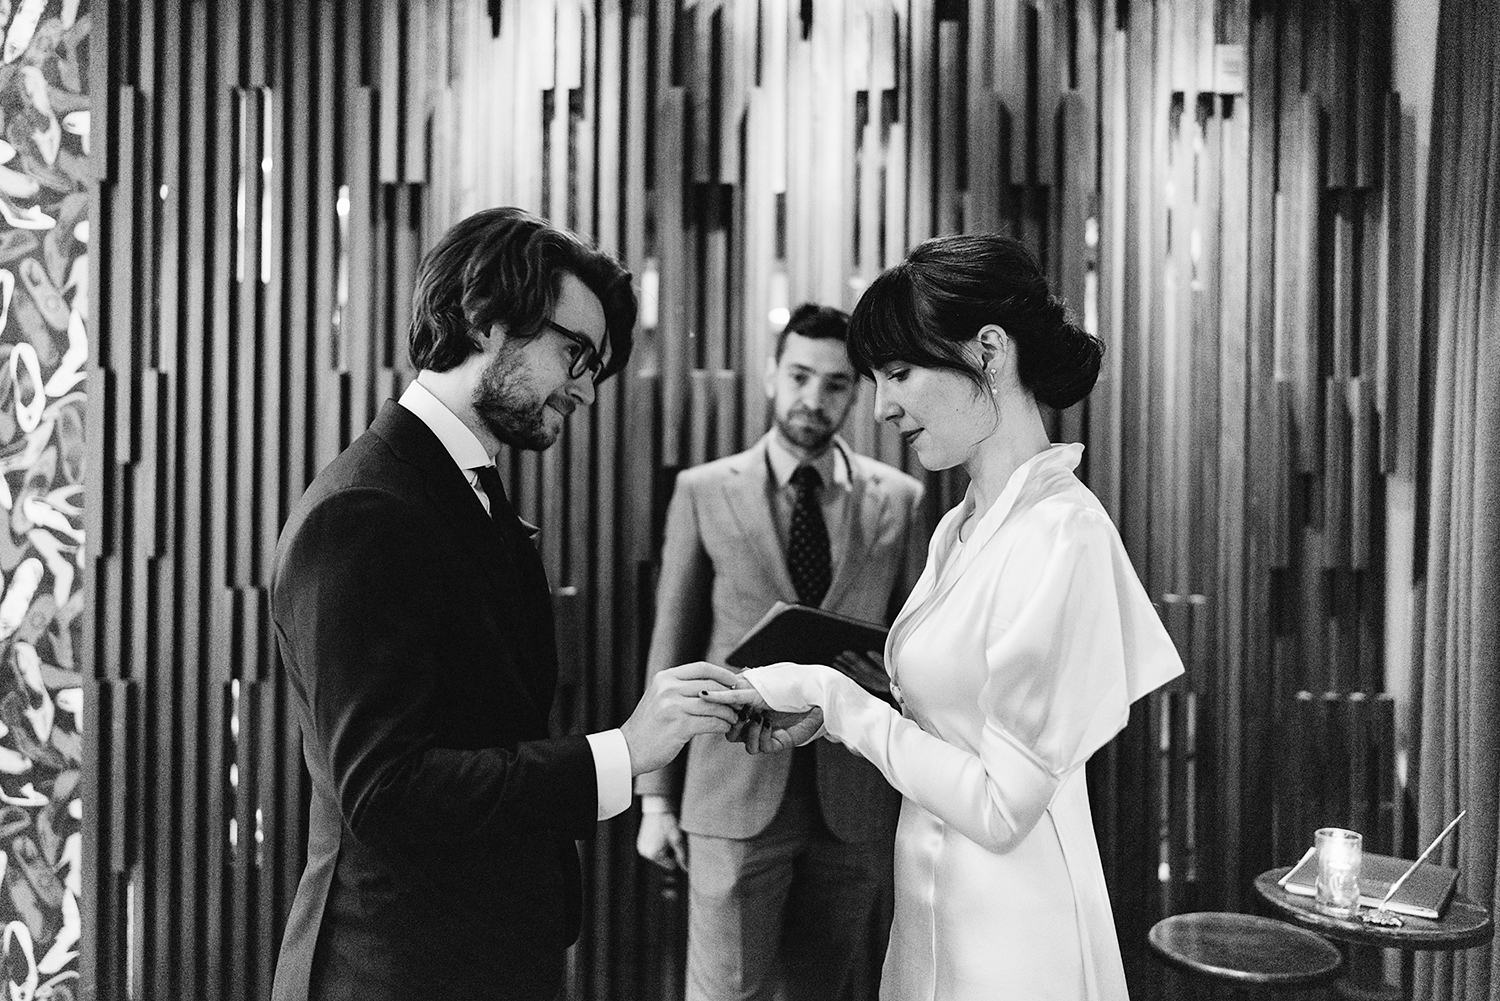 bw-film-bride-and-groom-exchanging-rings-emotional-bride-crying-ceremony-space-moody-candlelit-cinematic-Toronto-Elopement-at-the-Drake-Hotel-pop-up-Torontos-Best-wedding-photographers-candid-documentary-photojournalistic.jpg